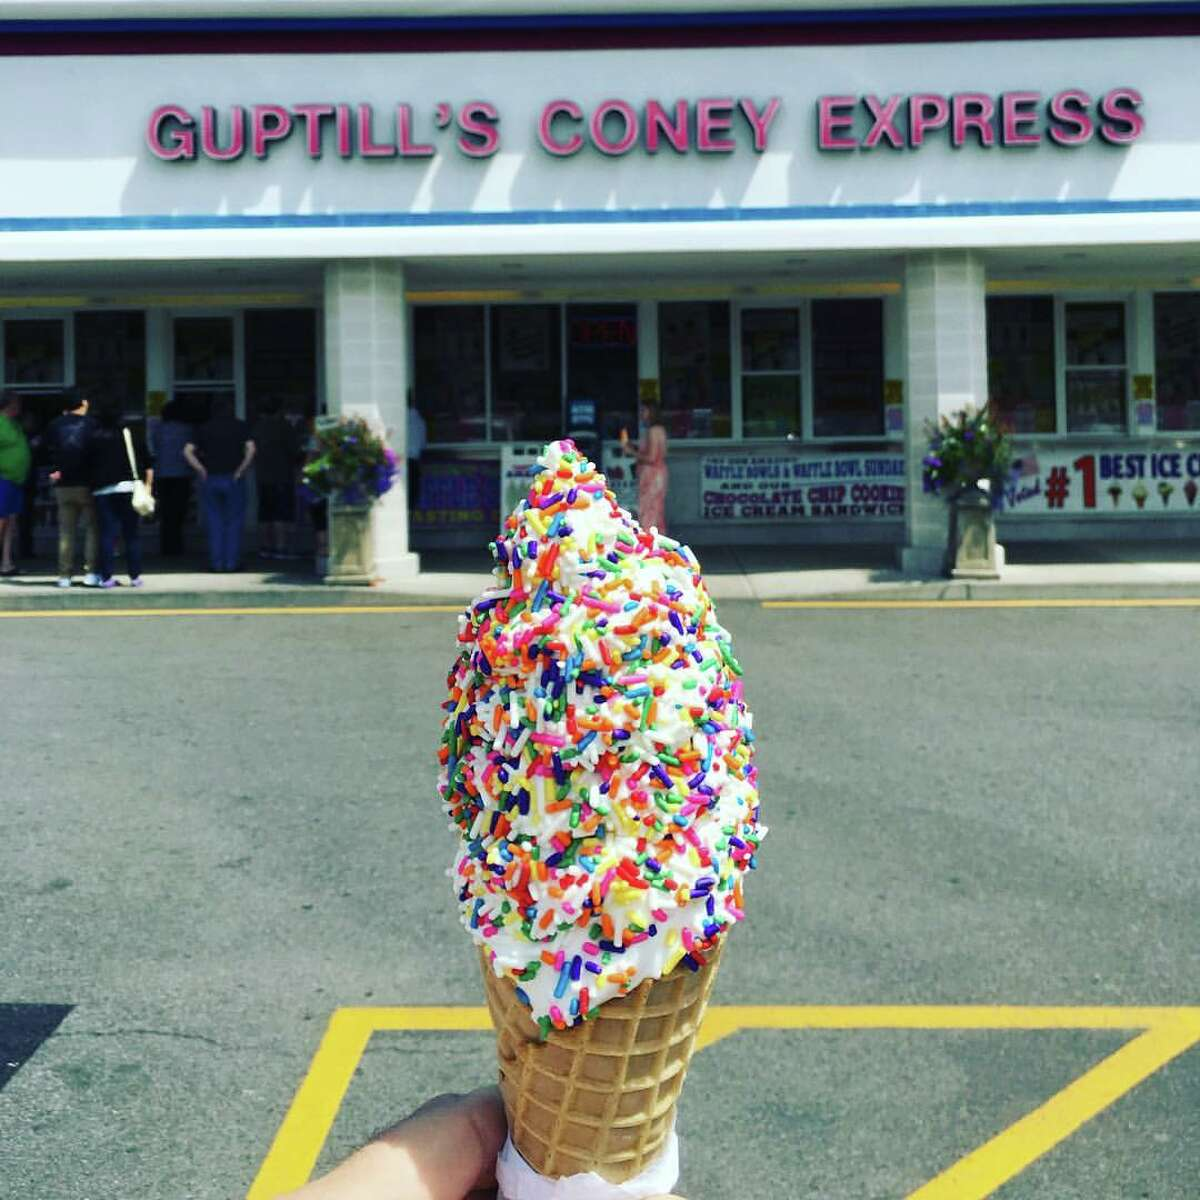 2. Guptill's Coney Express in Cohoes.